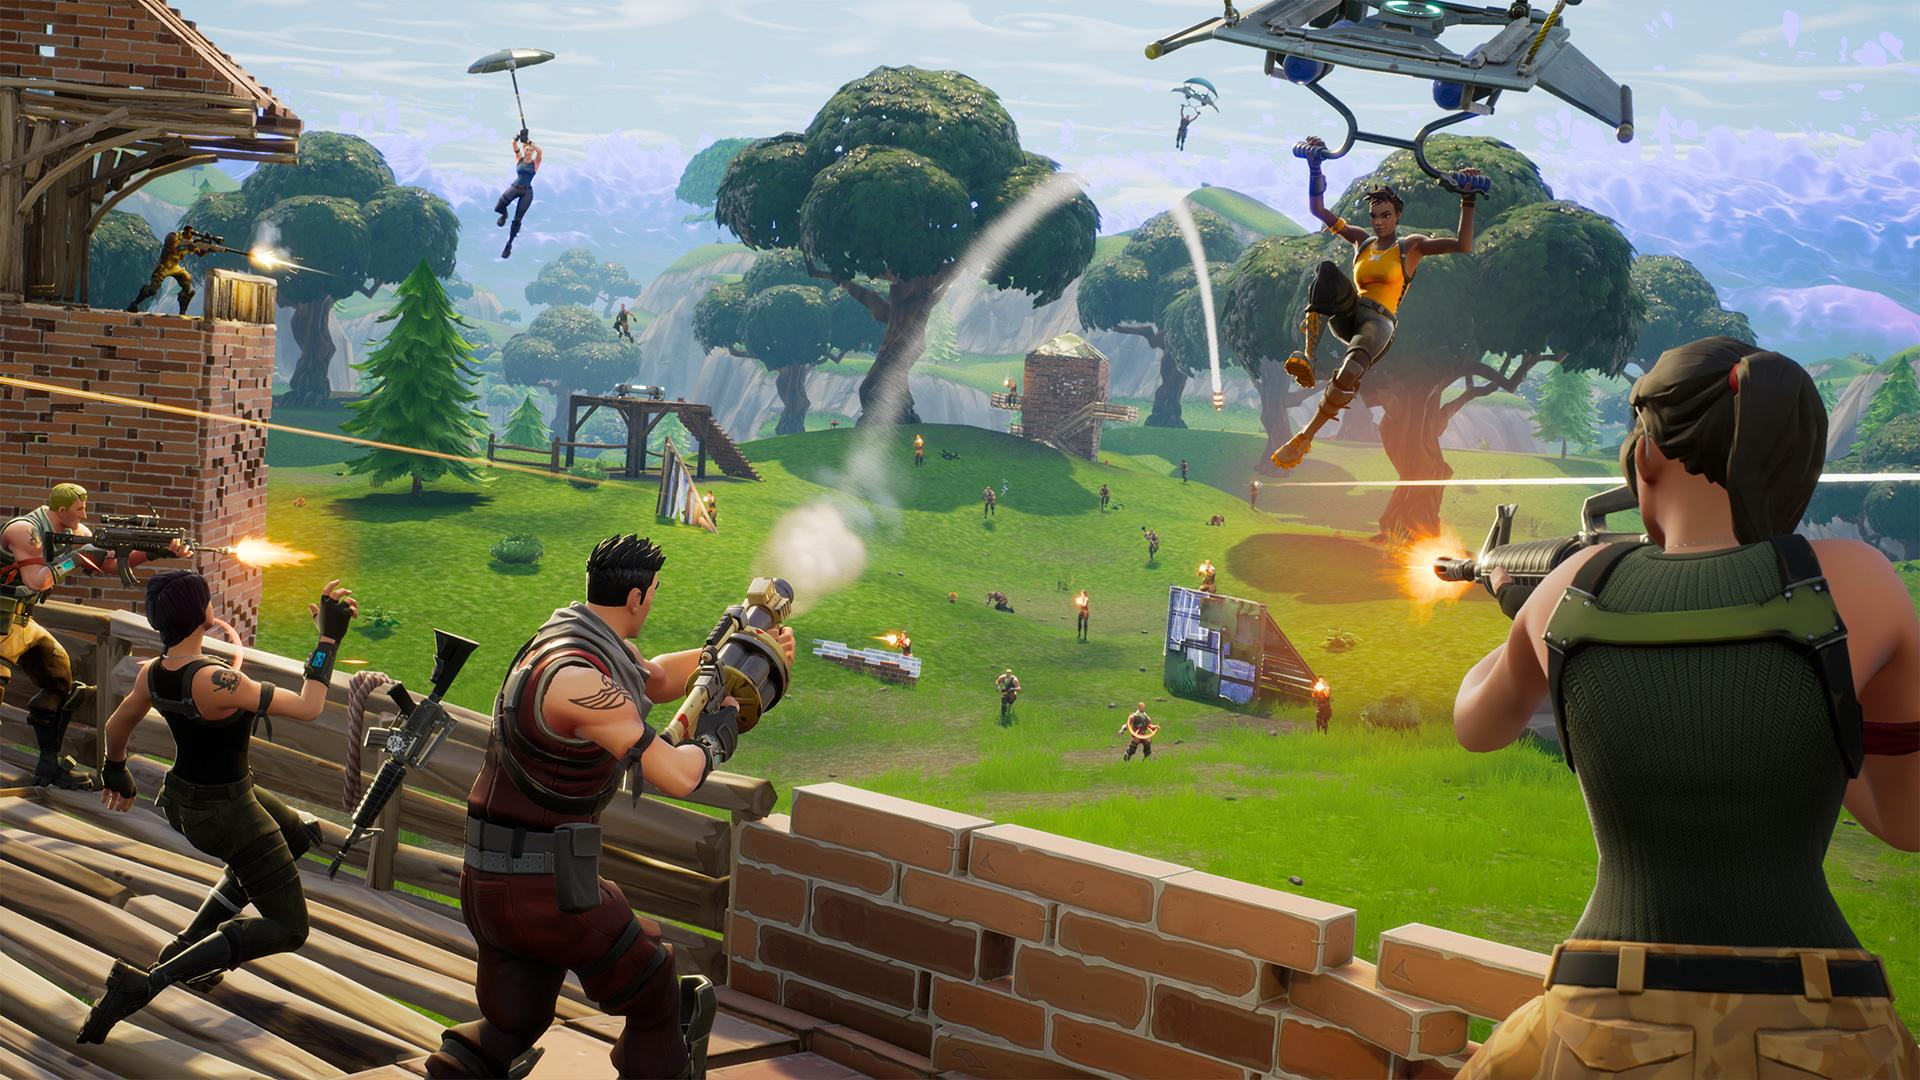 Fortnite is now the most watched game on Twitch, doubling